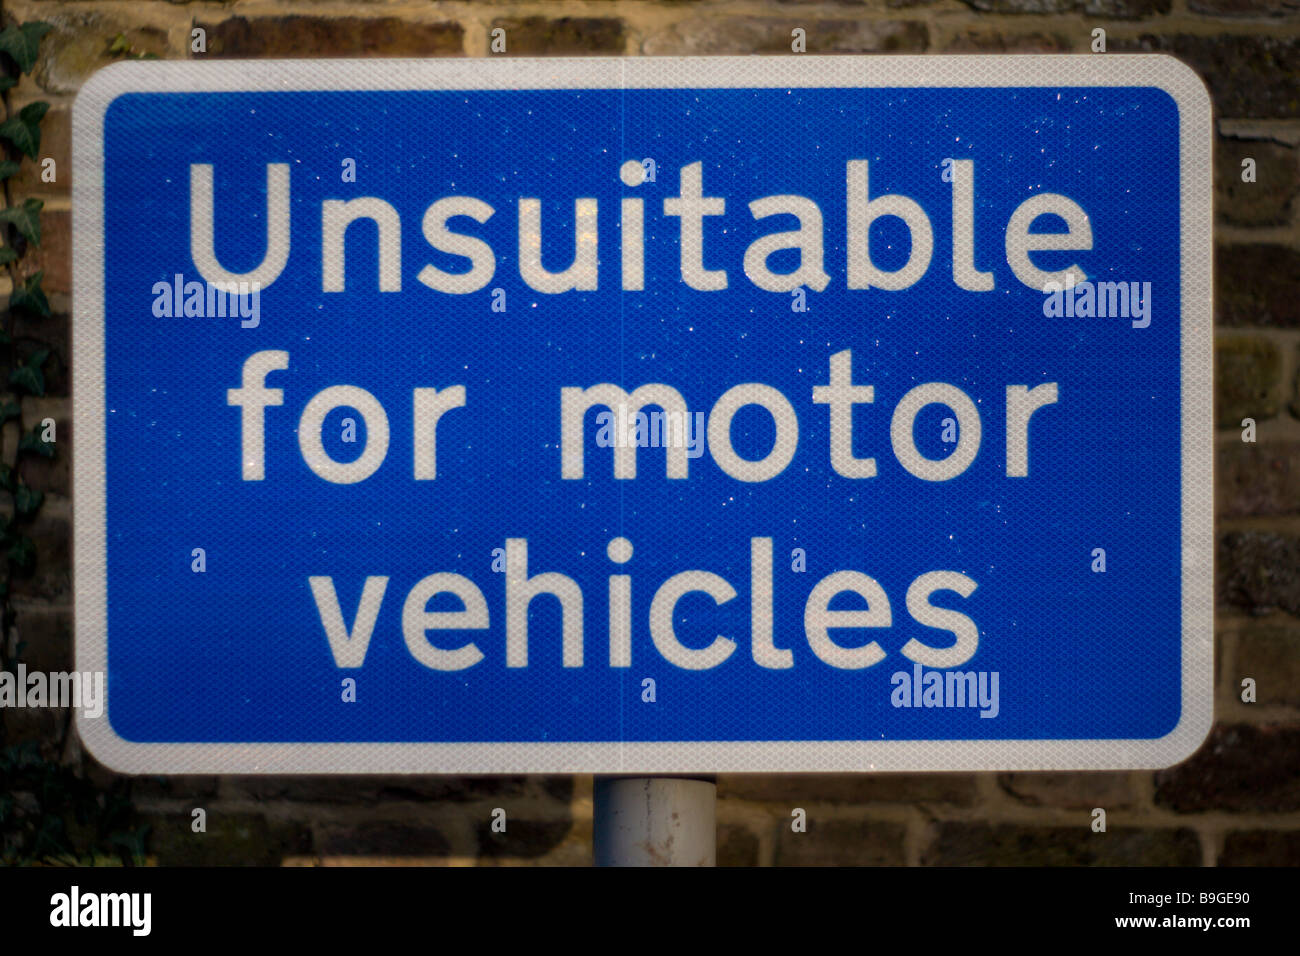 Unsuitable for motor vehicles sign - Stock Image